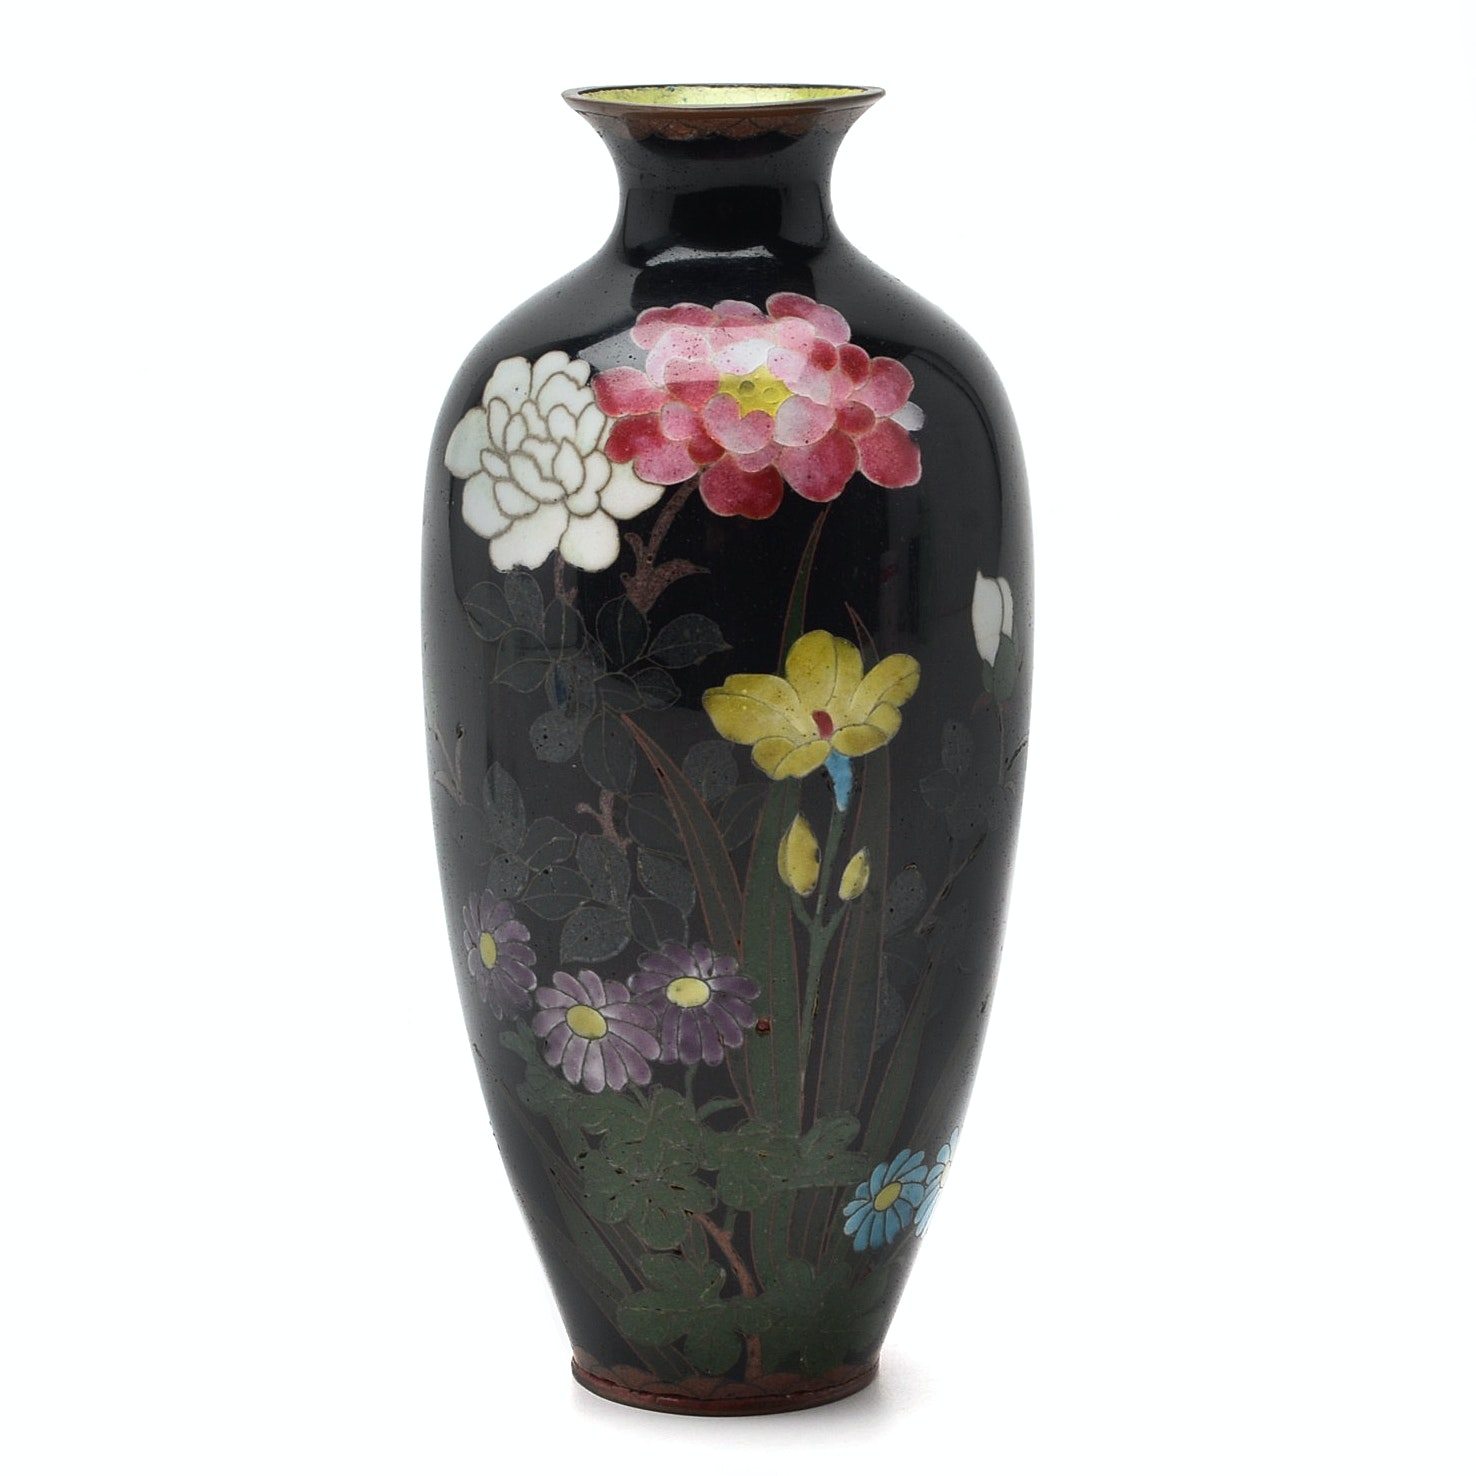 Late 19th/ Early 20th Century Japanese Cloisonné Vase